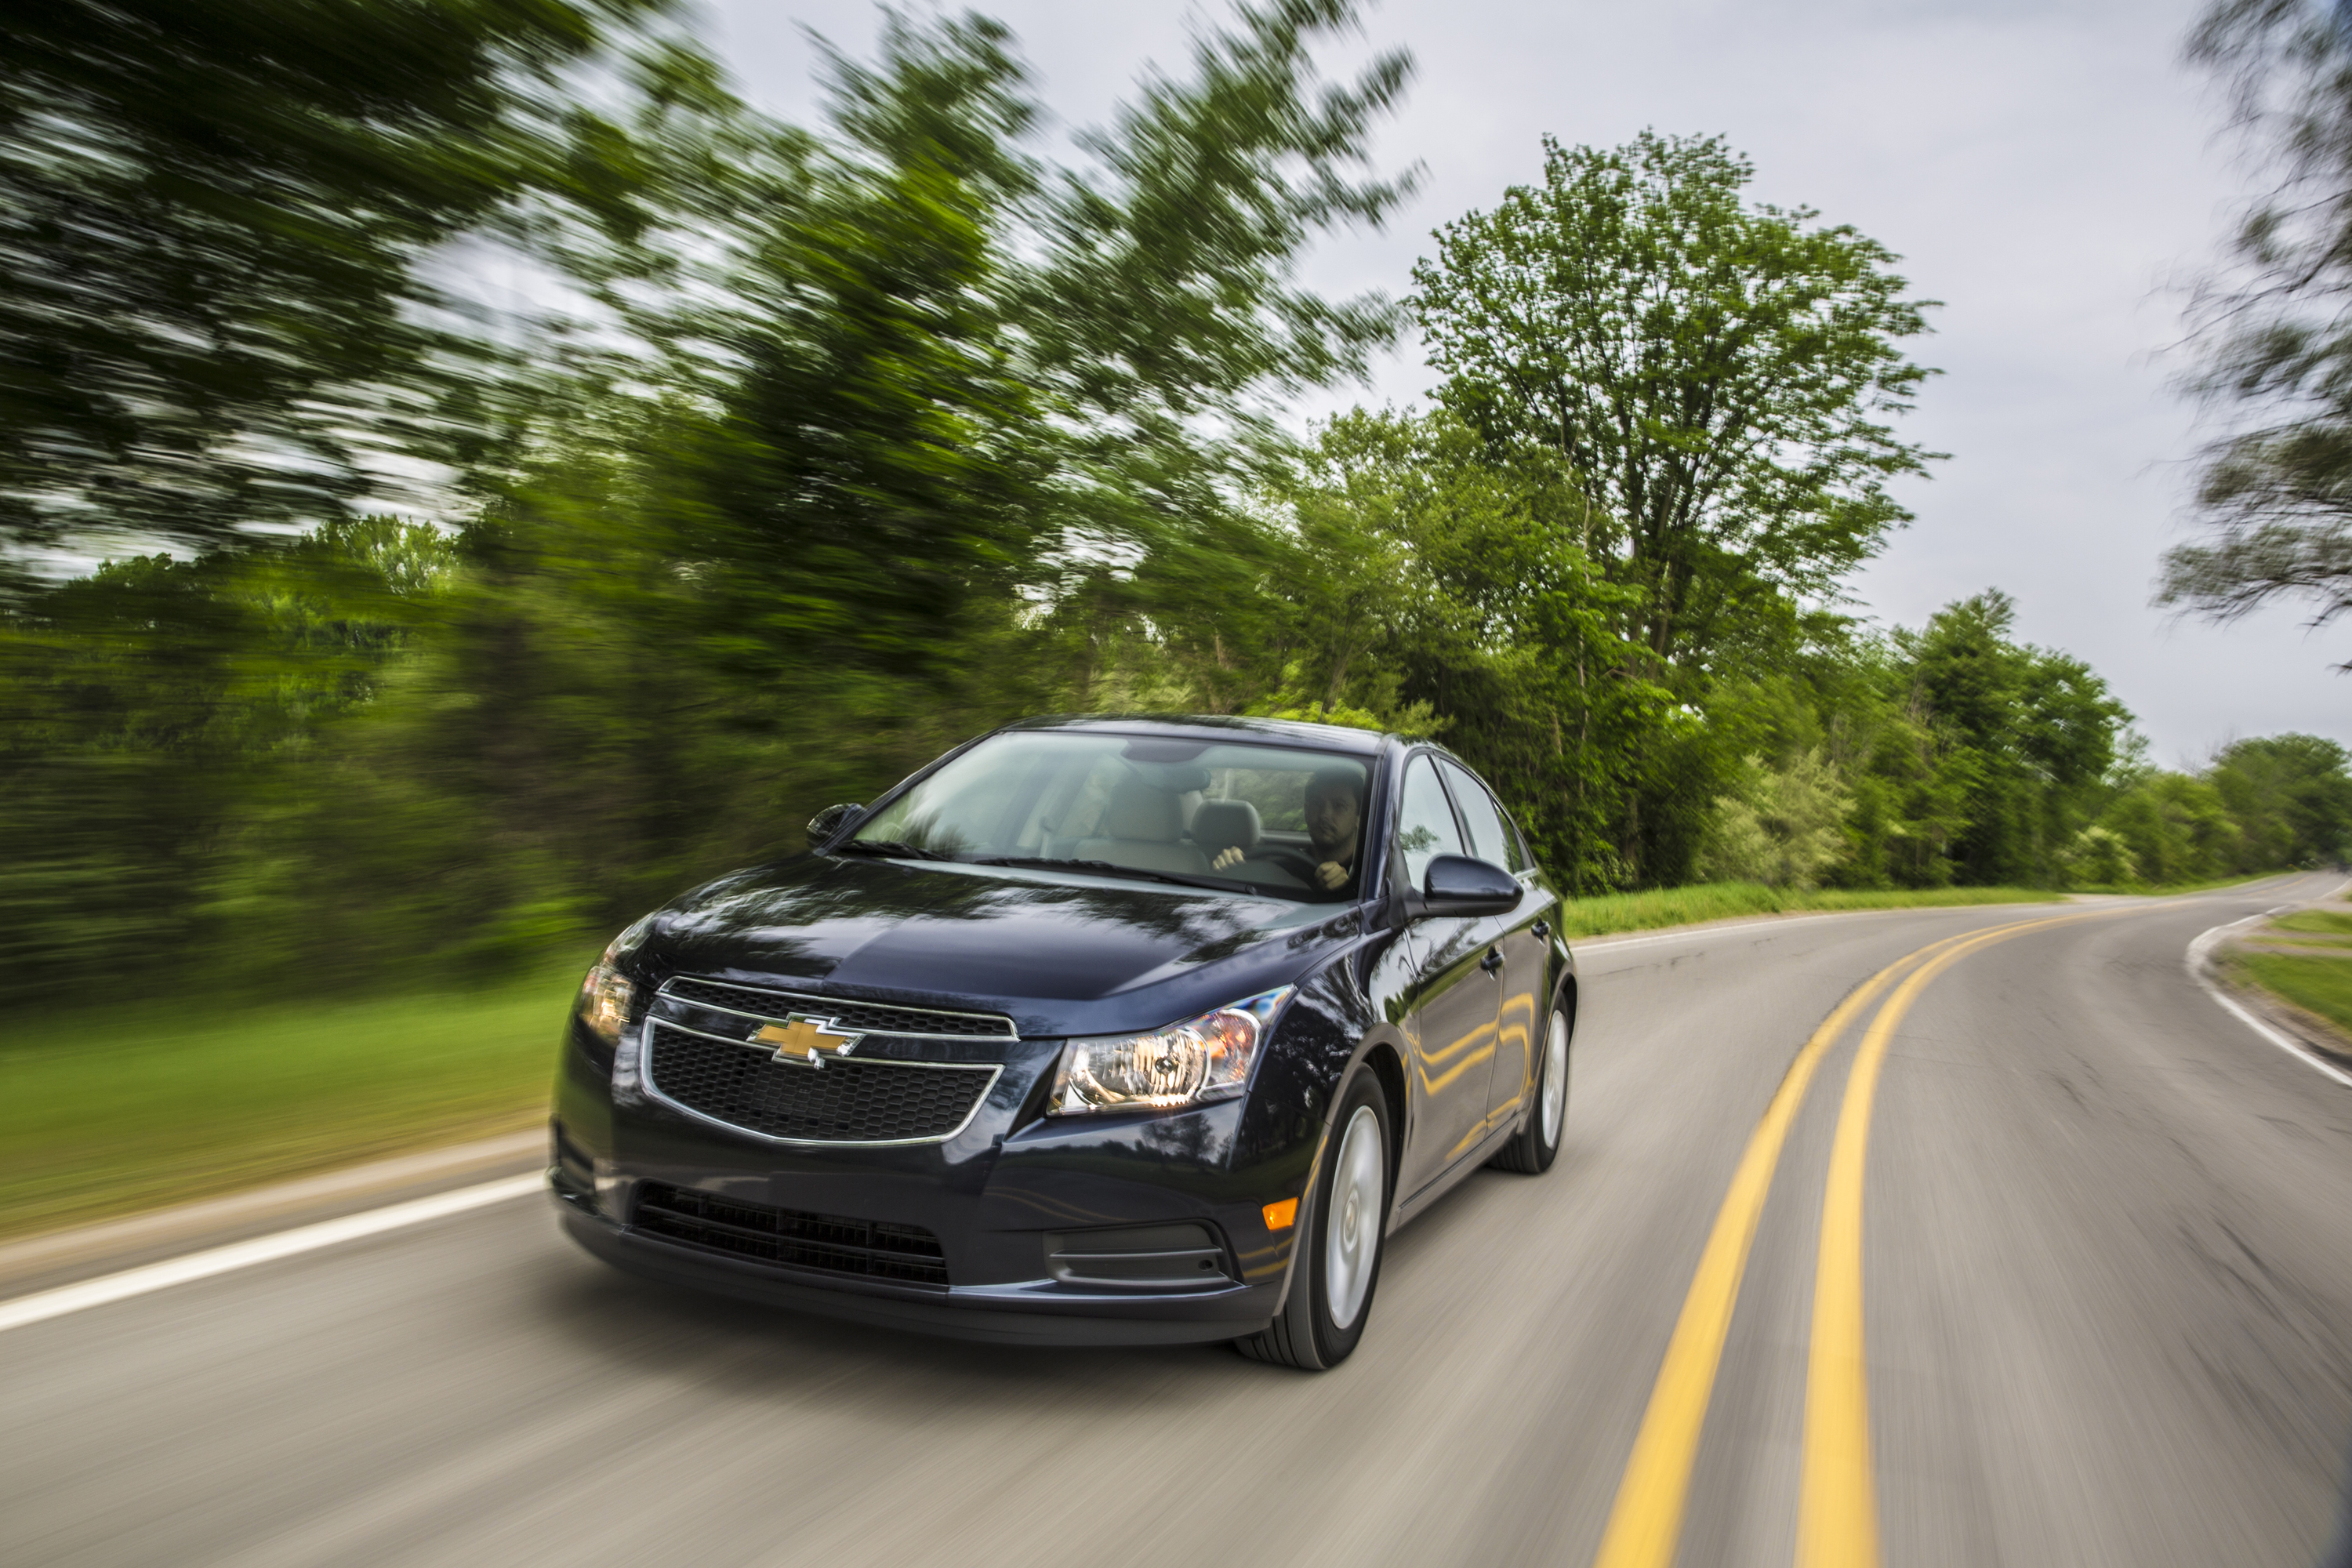 lights listings img inc sold sales mpg northern auto cruze chevrolet